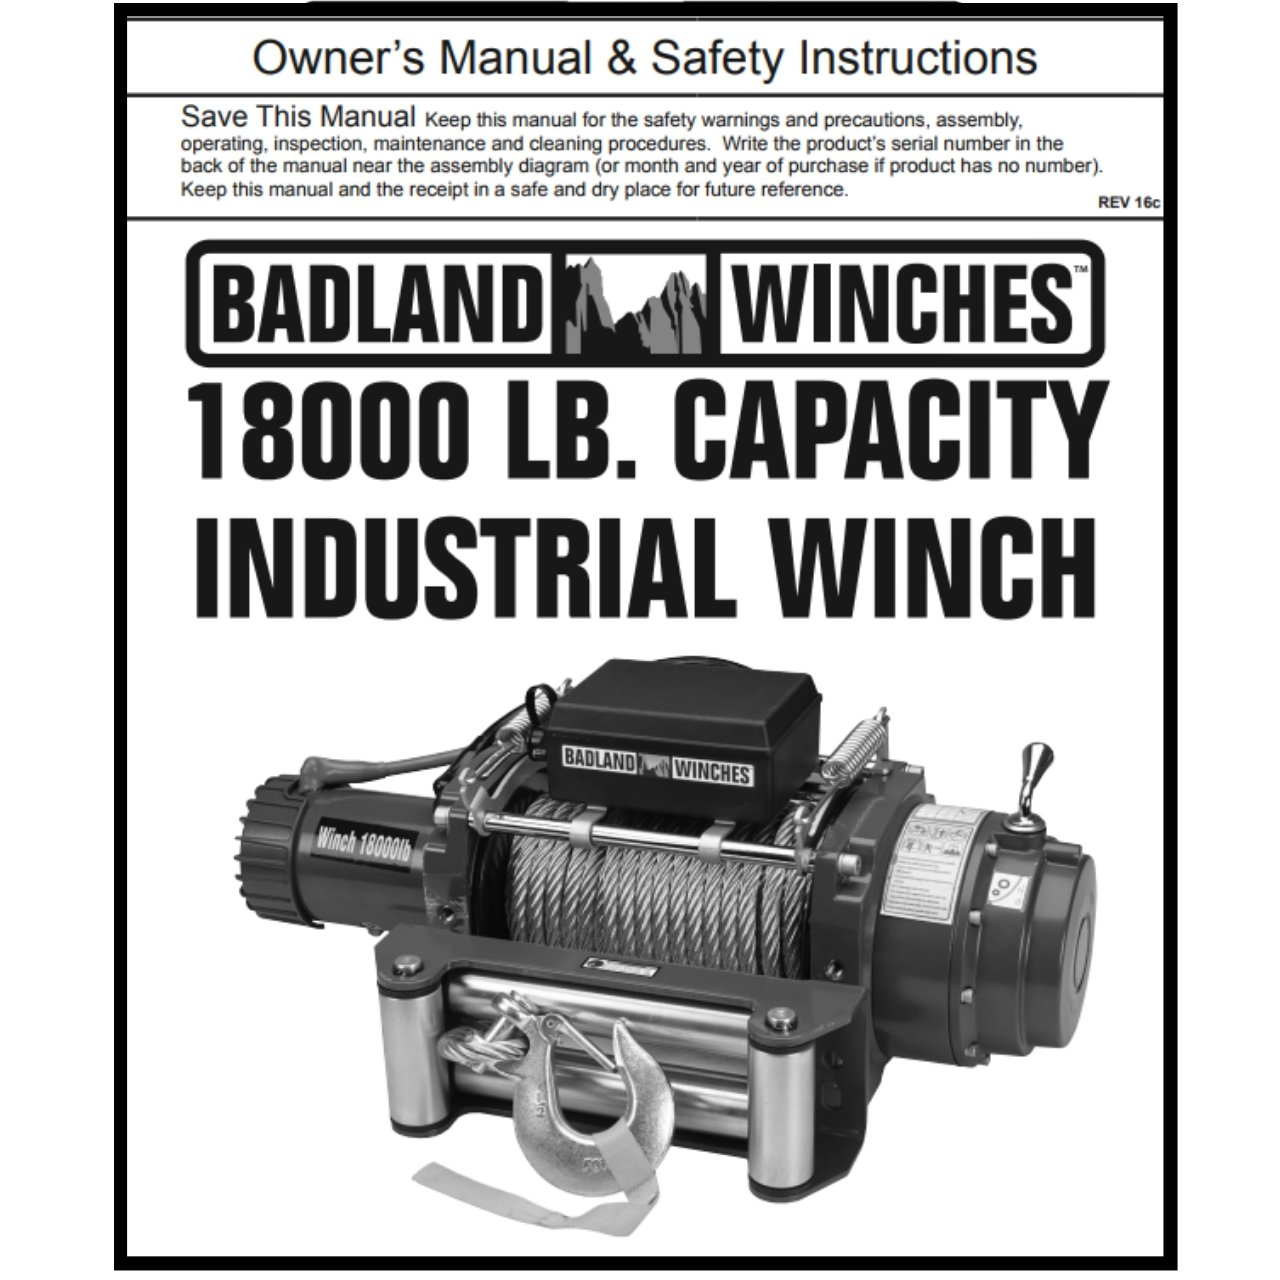 18000 Lb Industrial Tow Truck Electric Winch With Badland Winches 2000 Wiring Diagram Automatic Load Holding Brake Home Improvement